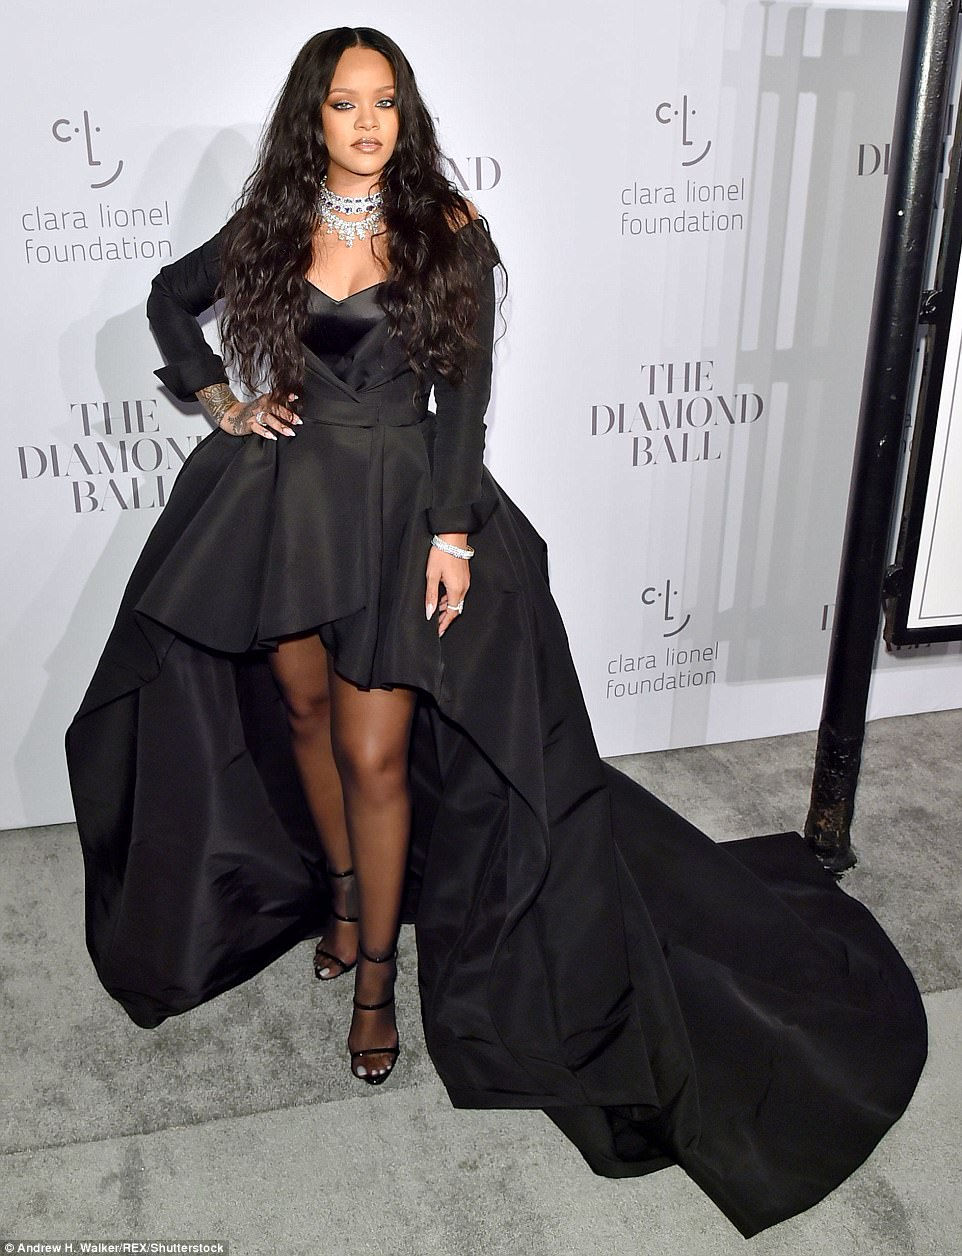 She's arrived! Rihanna arrived at her 3rd Annual Clara Lionel Foundation Diamond Ball in New York on Thursday in a dramatic black gown